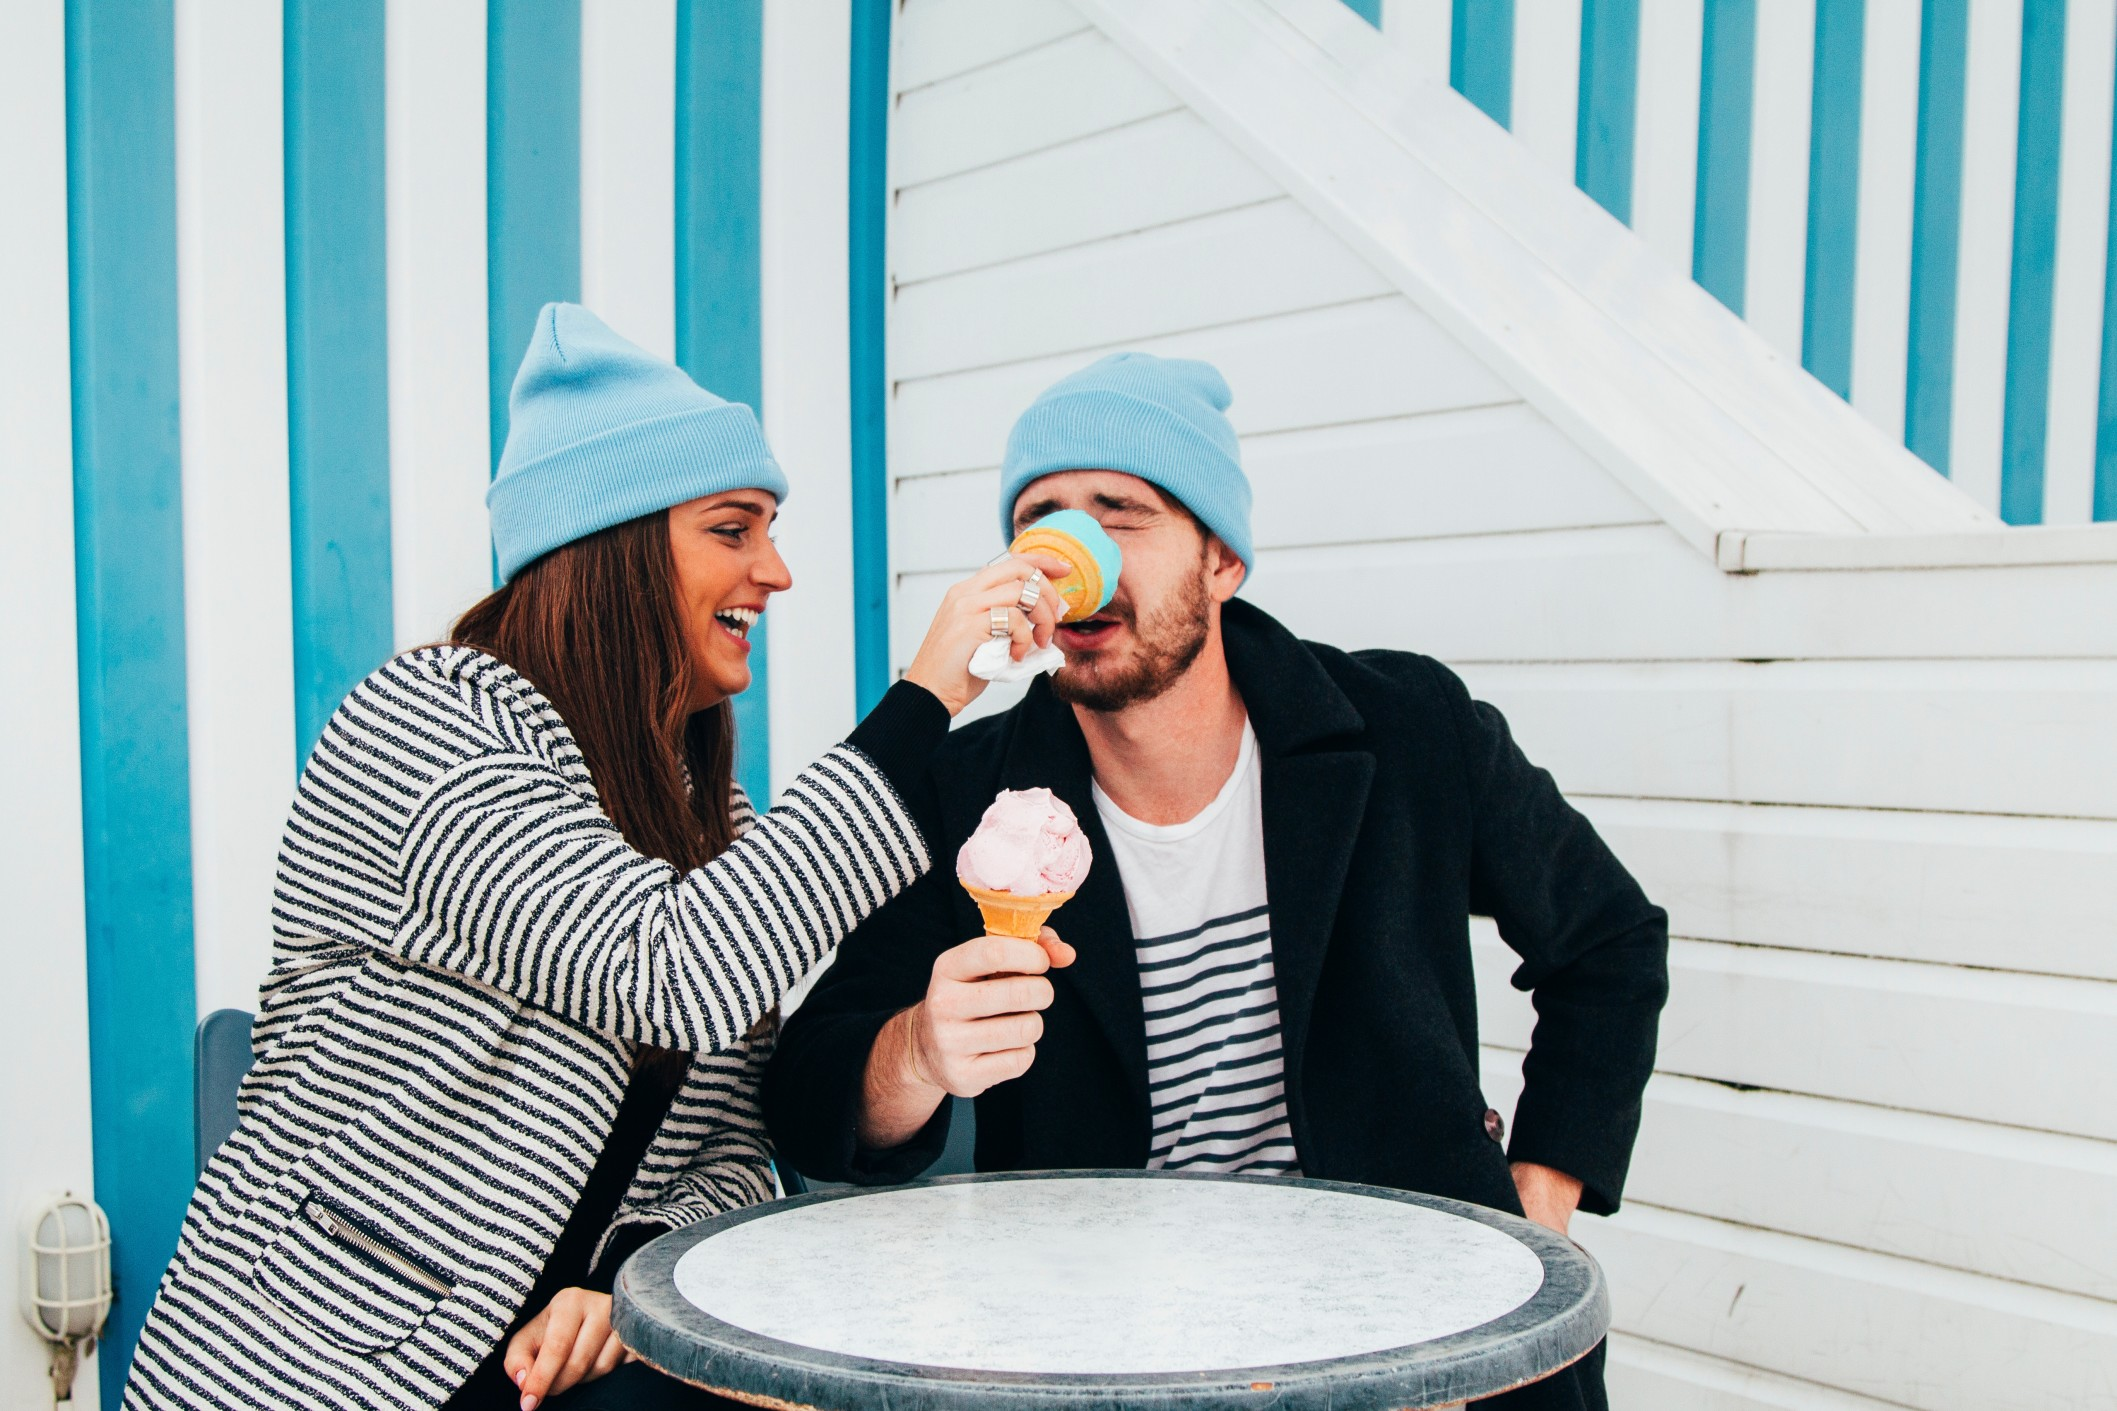 people-blue-couple-ice-cream-stripes-friends-funny-funny-hilarious-happy-lol-millennials-young-adults_t20_mo79Ov